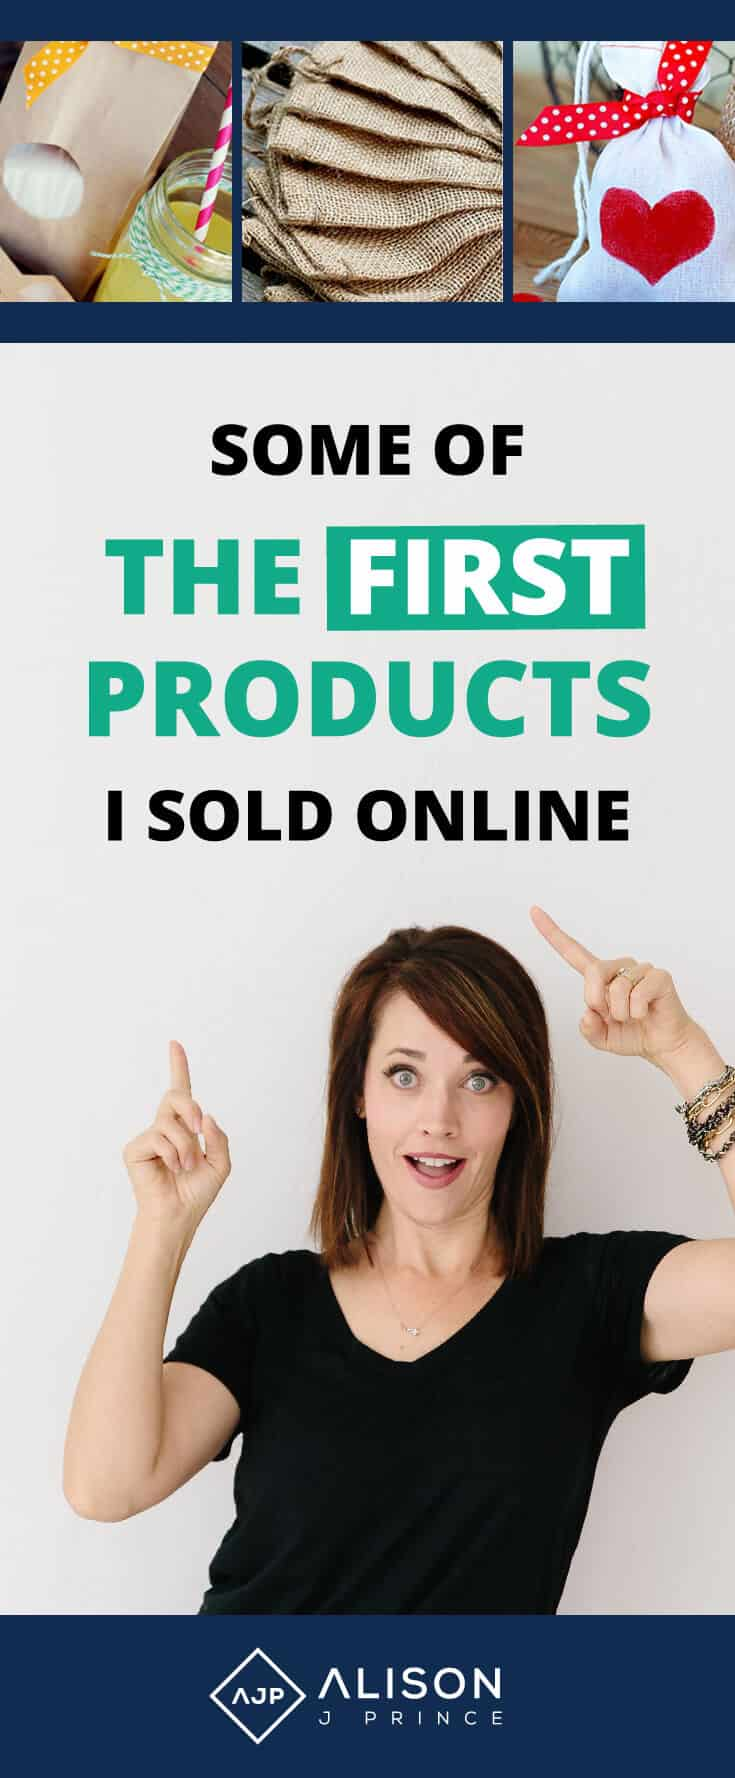 Starting an online business with no money - find out the first products Alison Prince ever sold